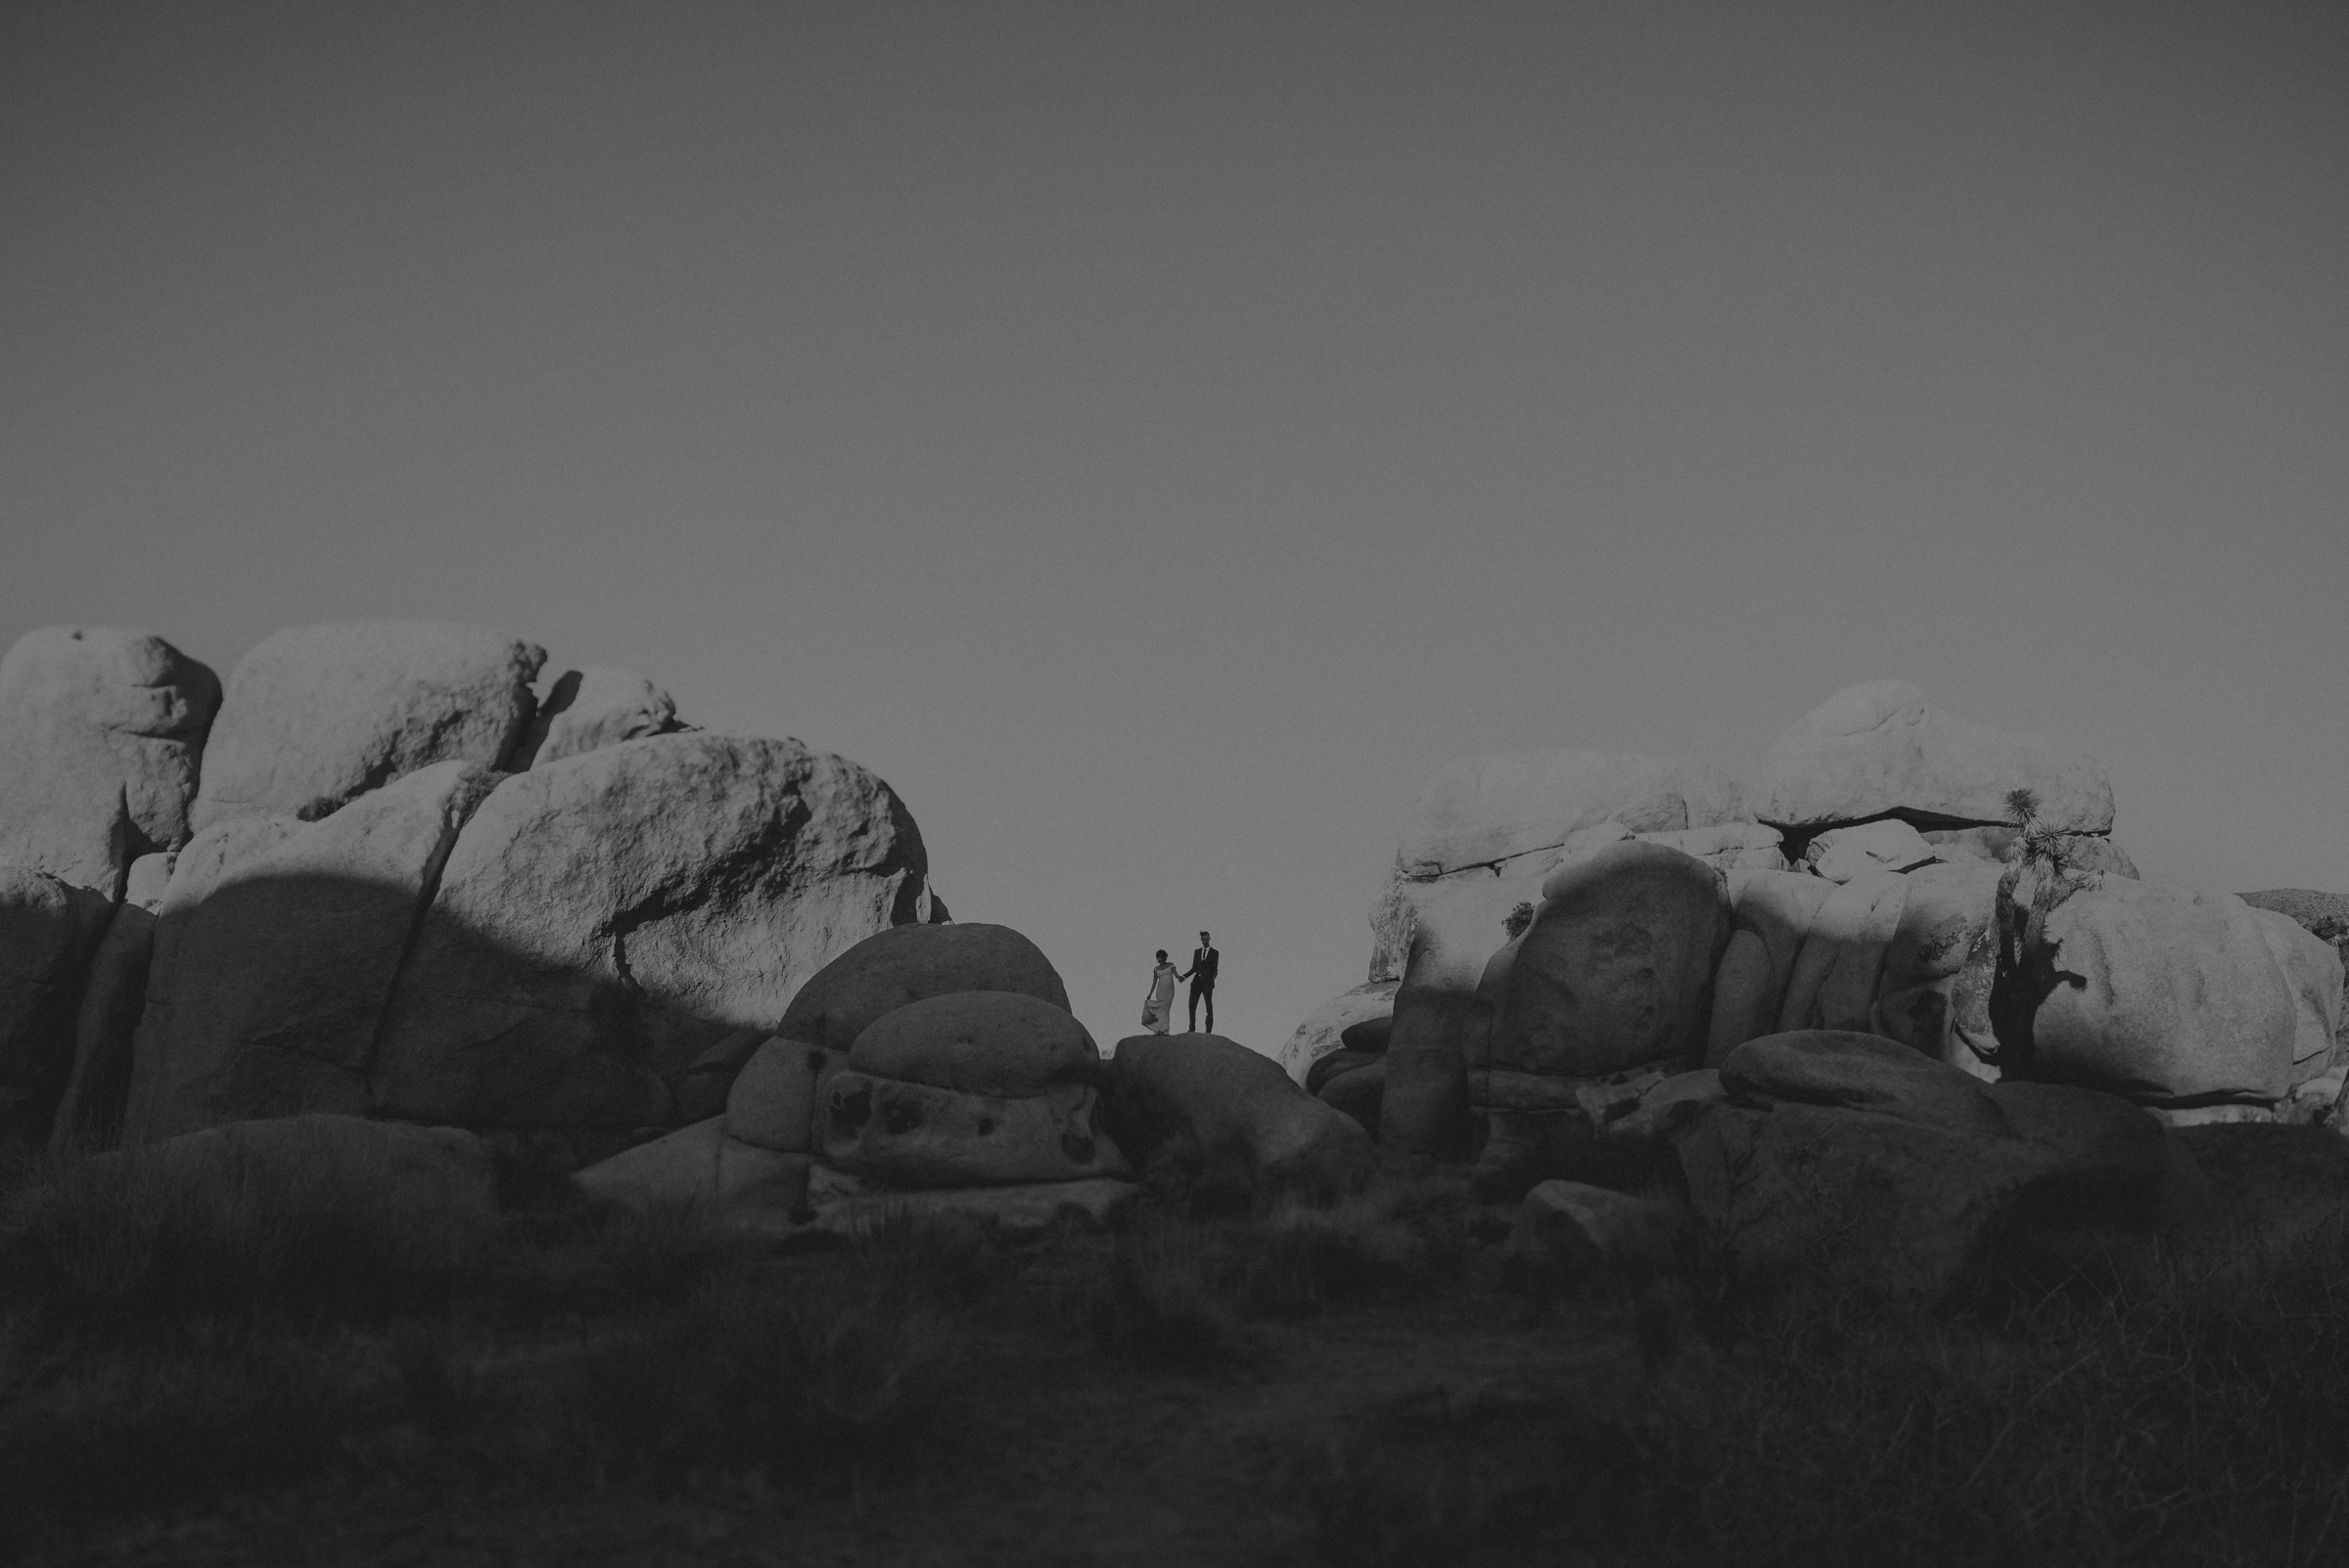 Joshua Tree Elopement - Los Angeles Wedding Photographers - IsaiahAndTaylor.com-069.jpg